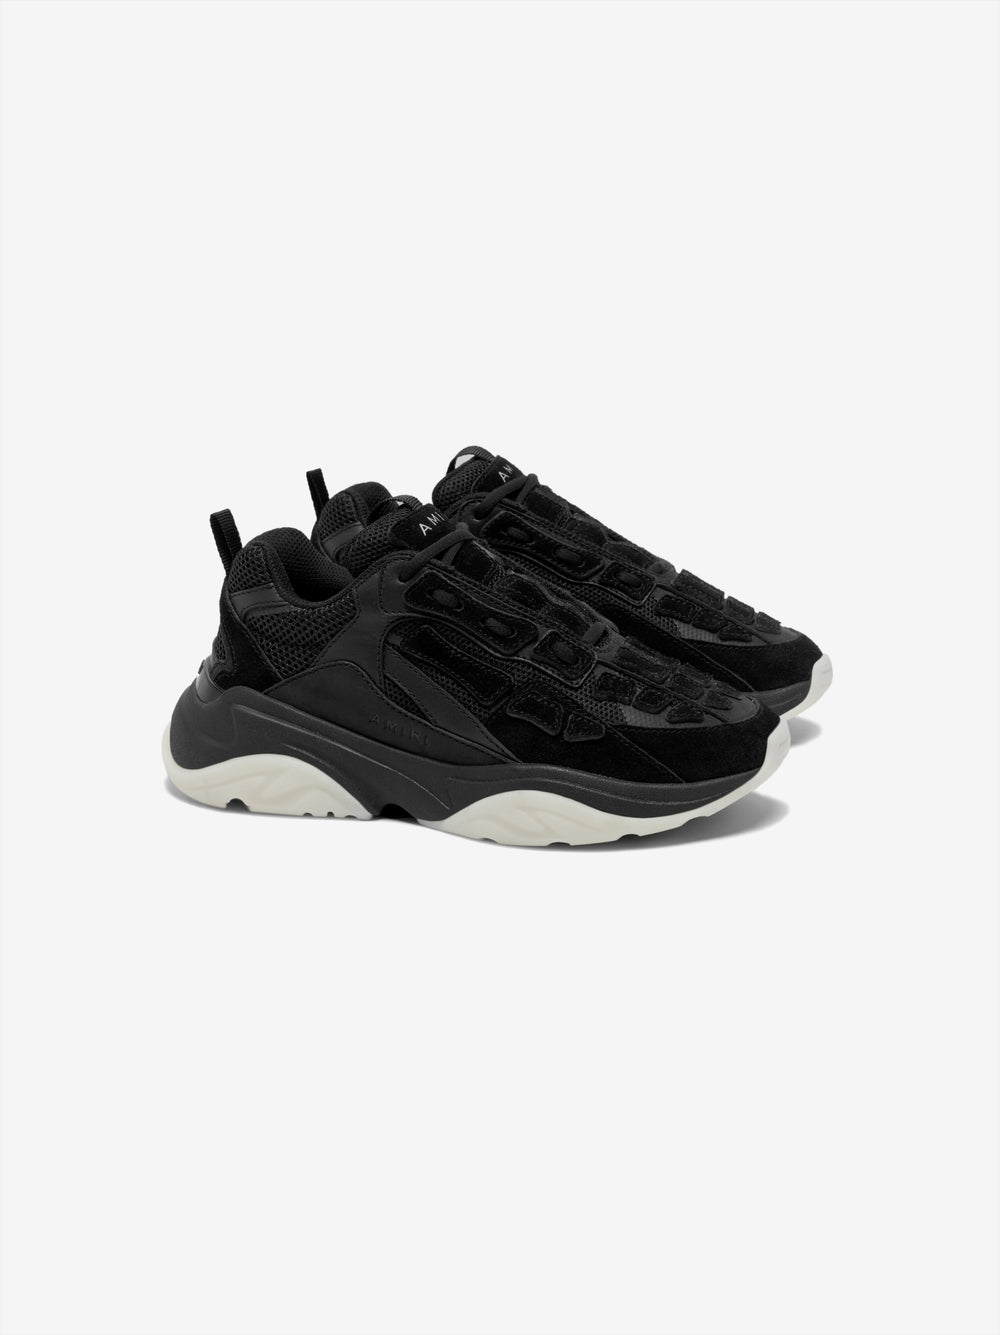 Bone Runner - Black/Black